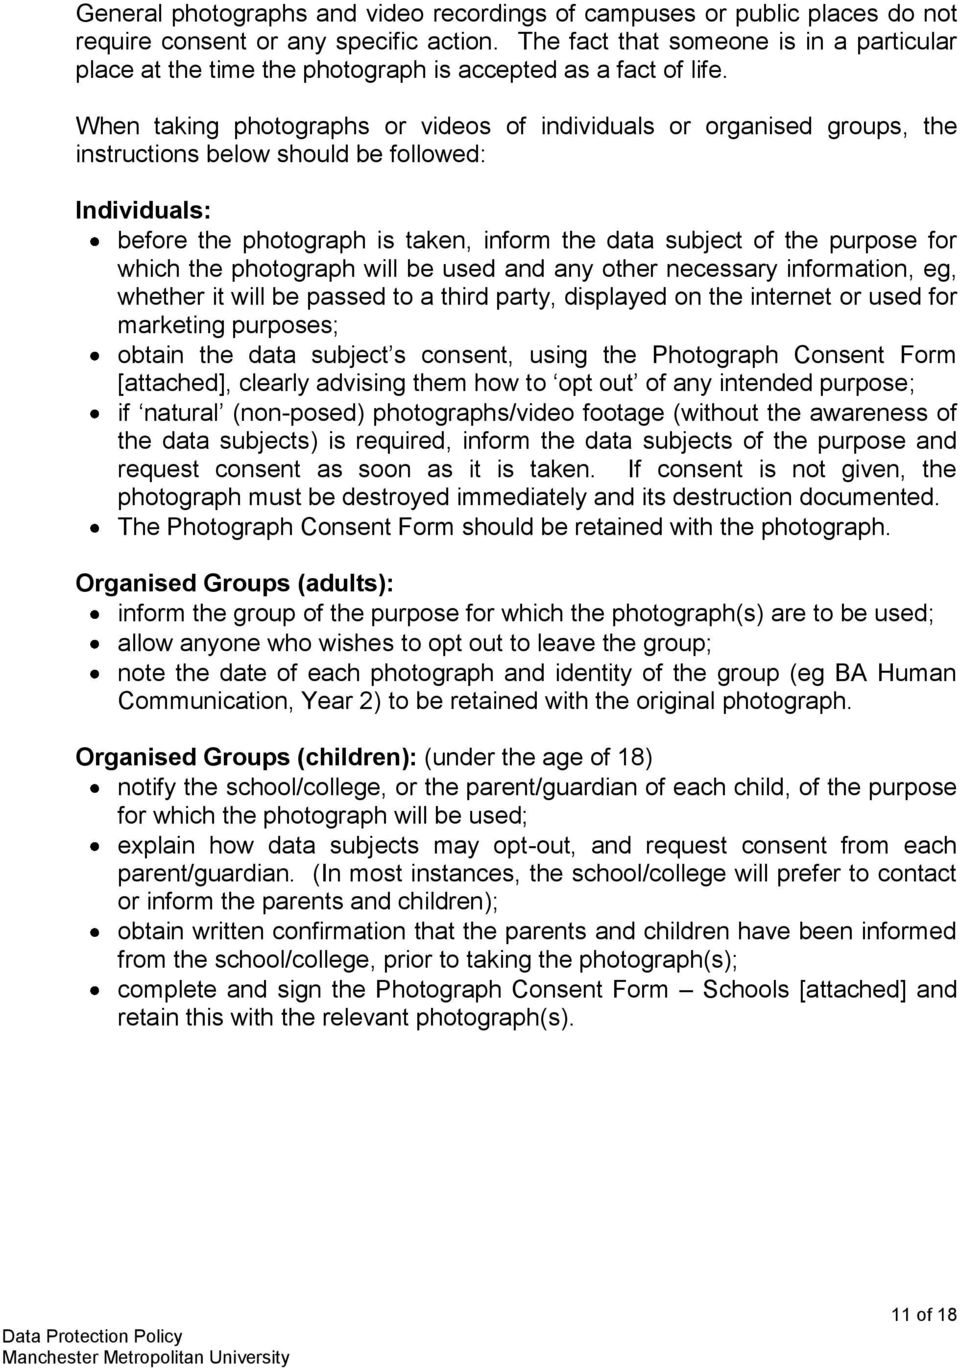 When taking photographs or videos of individuals or organised groups, the instructions below should be followed: Individuals: before the photograph is taken, inform the data subject of the purpose